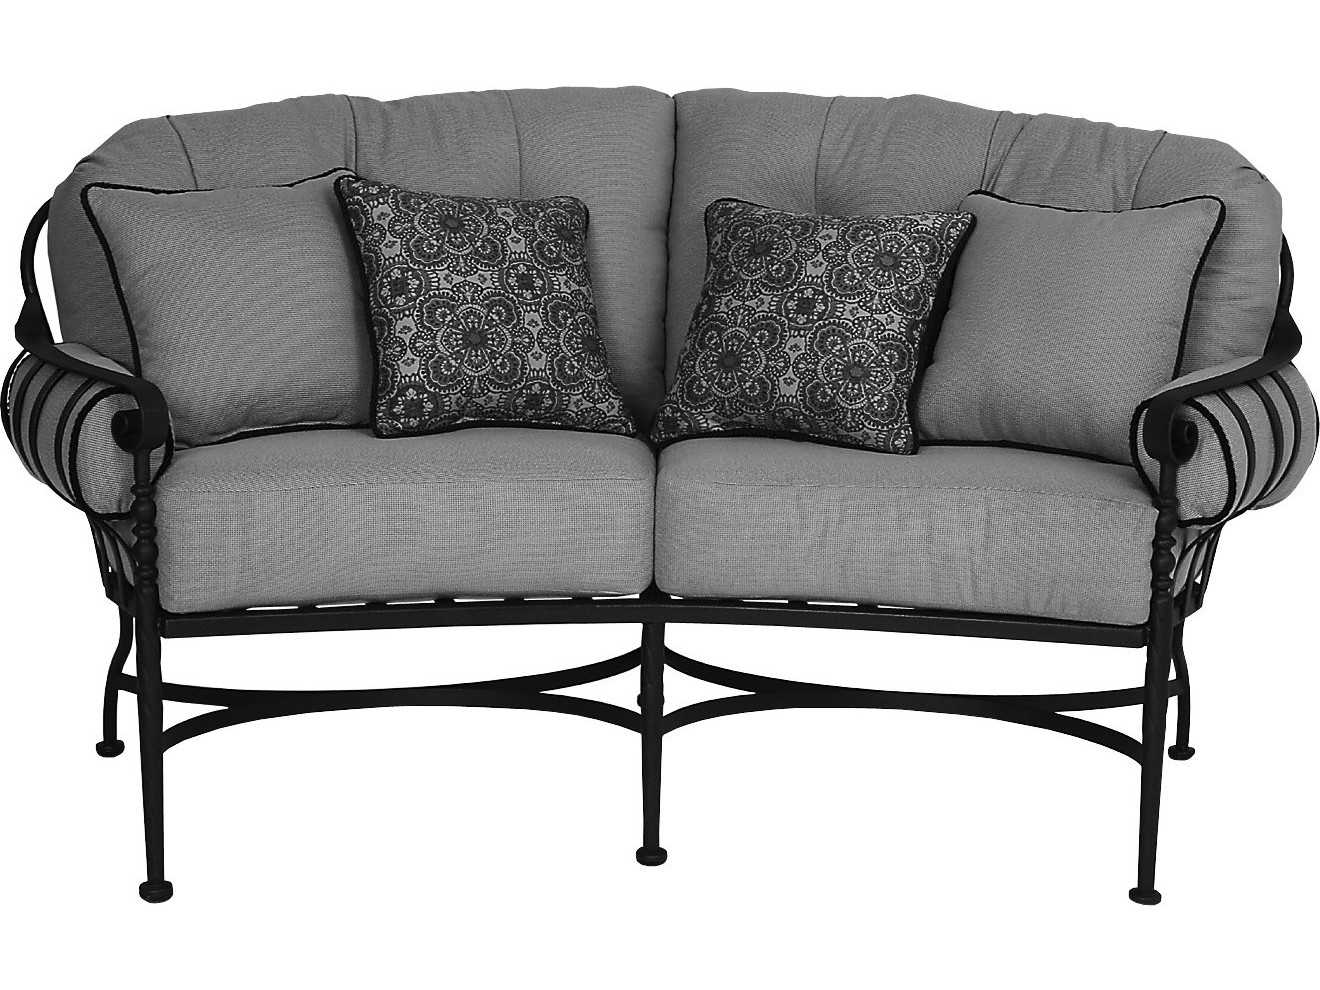 Meadowcraft Athens Loveseat Replacement Cushions